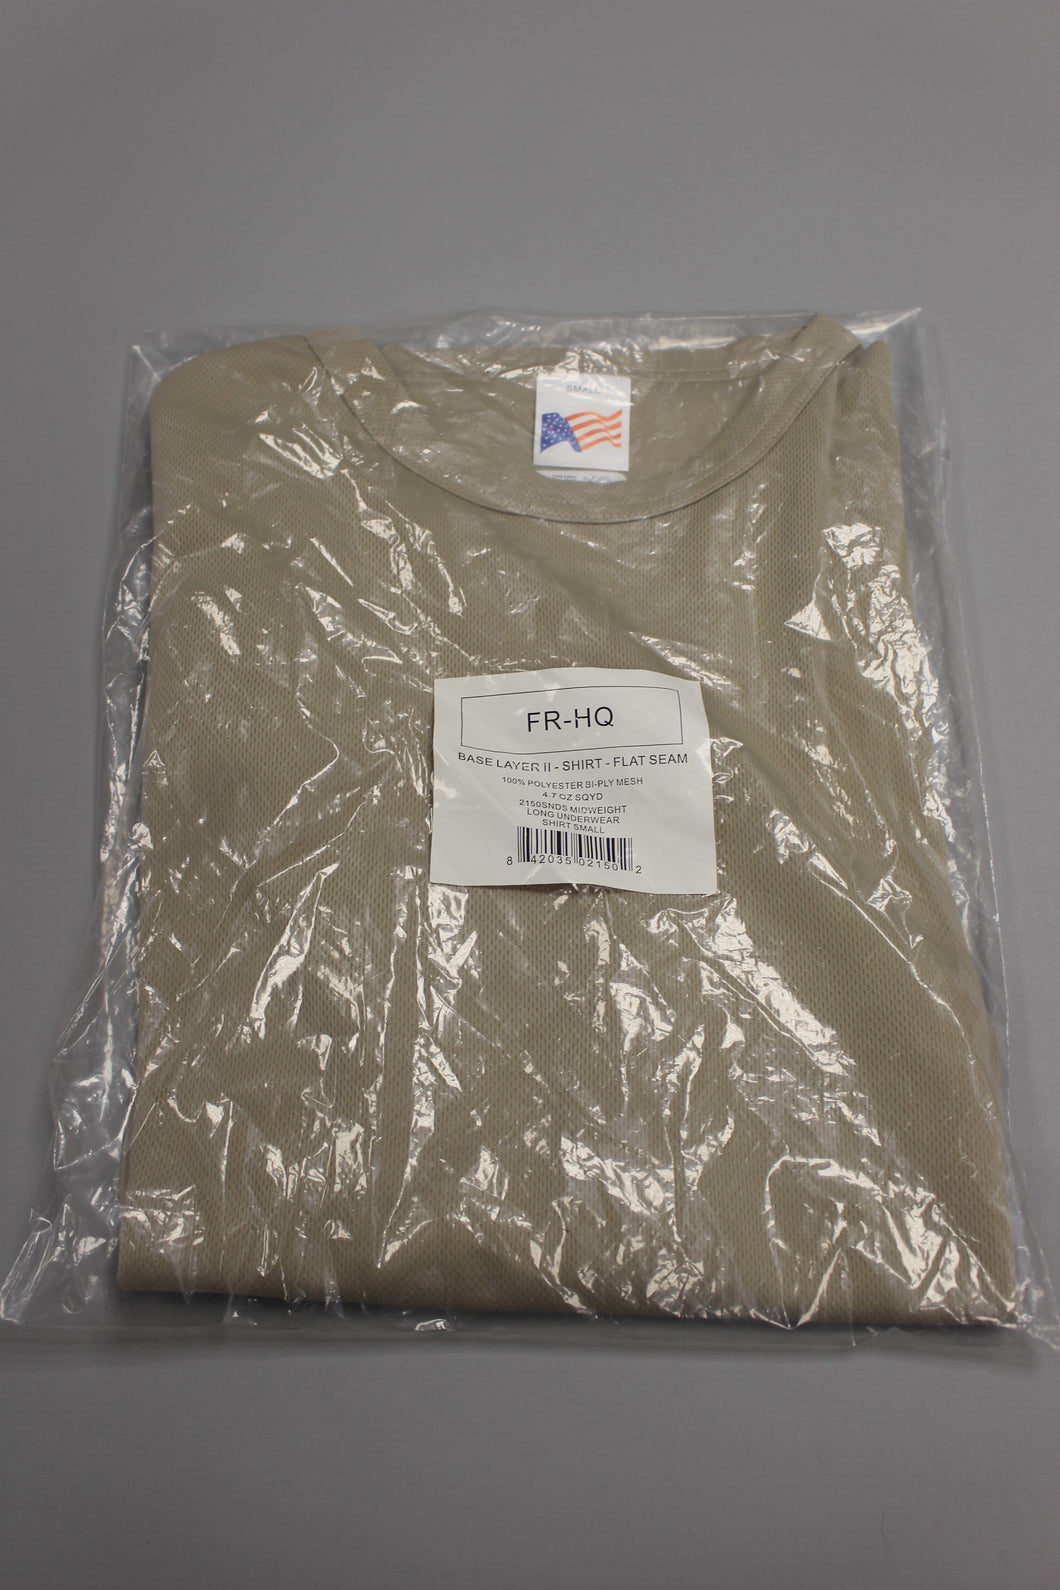 Midweight Long Underwear Base Layer II Shirt, Small, FR-HQ, New